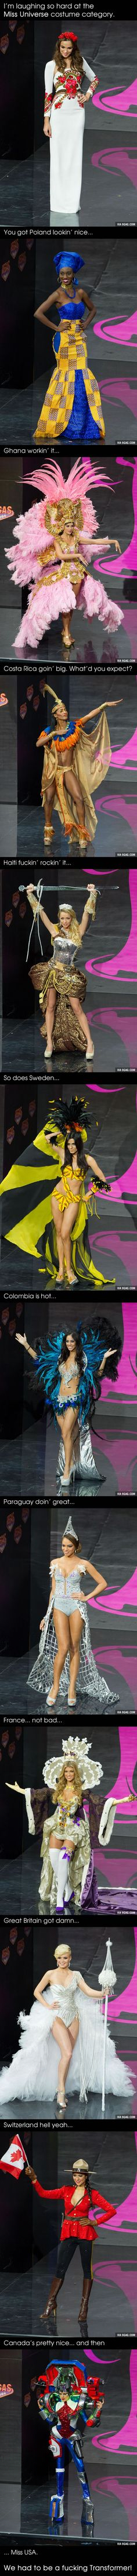 You will laugh hard at the miss universe costume category